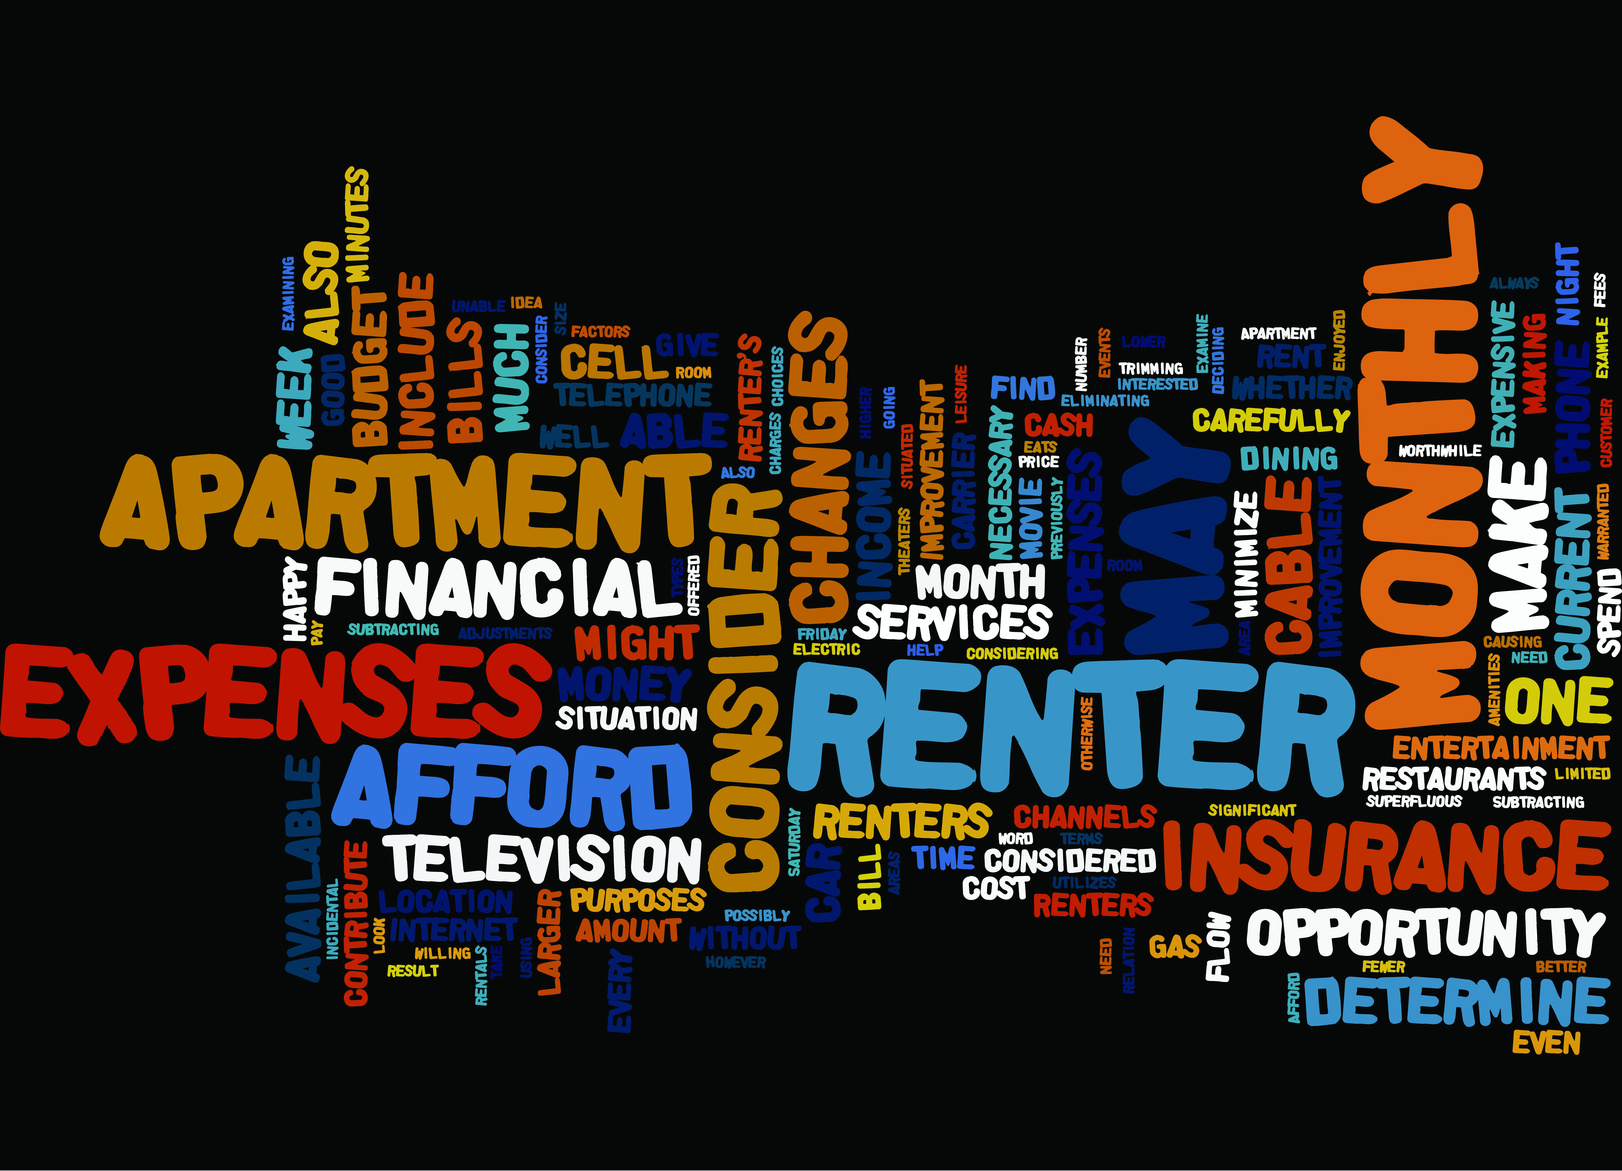 renters insurance in new jersey - mehta insurance agency